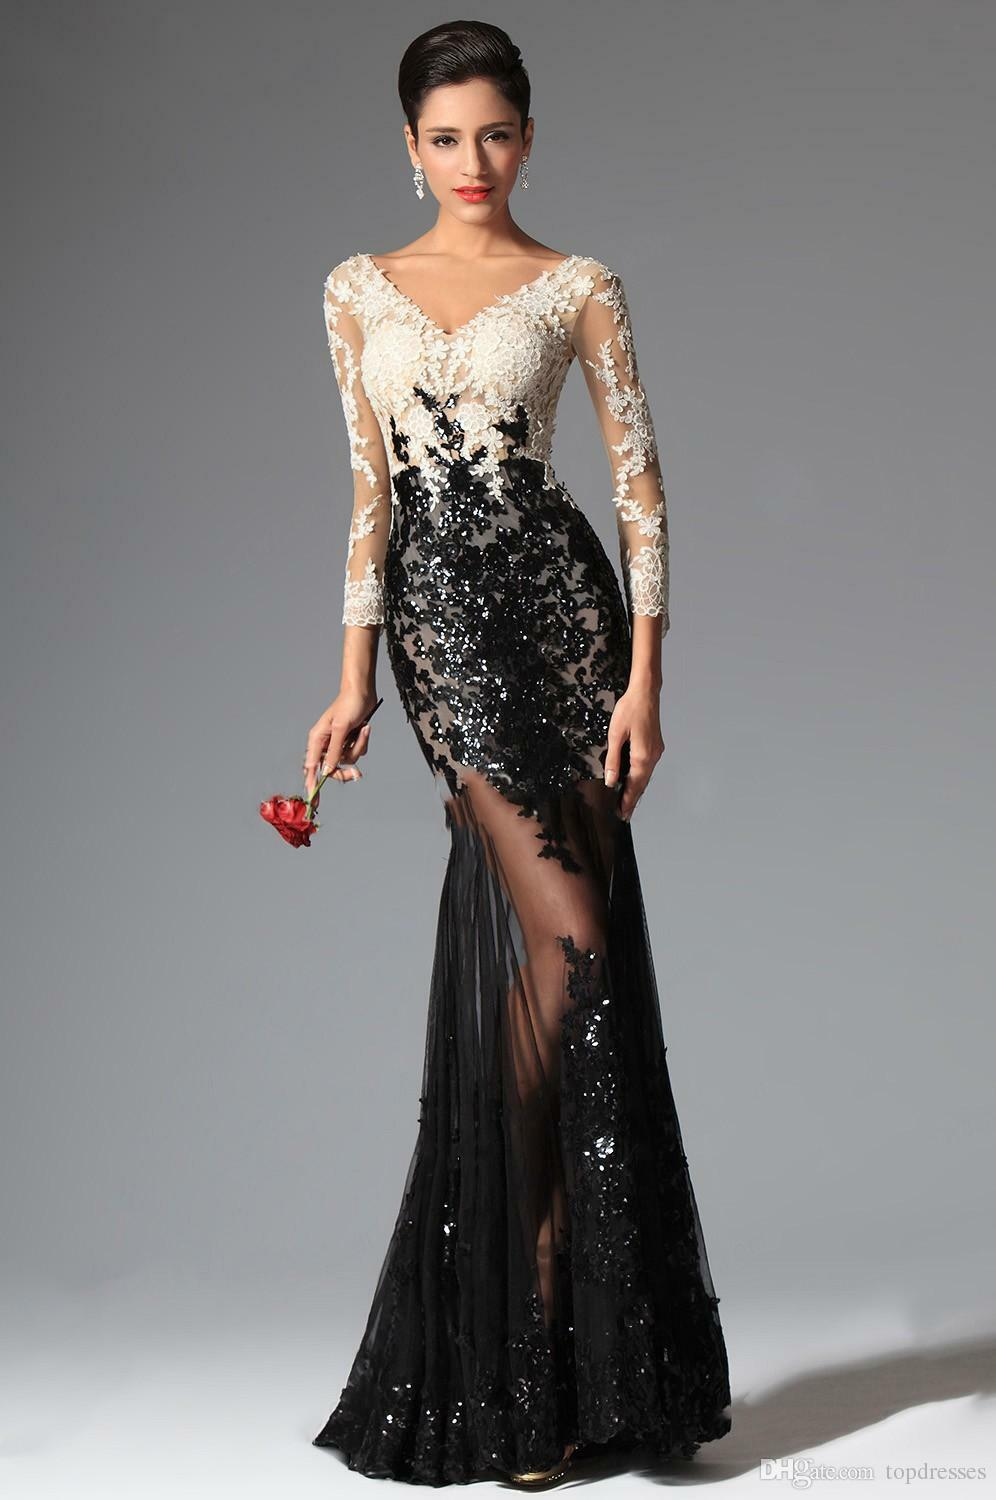 2018 Sexy Sheer Lace Evening Dresses Sequins Dress Mermaid Long Sleeve party